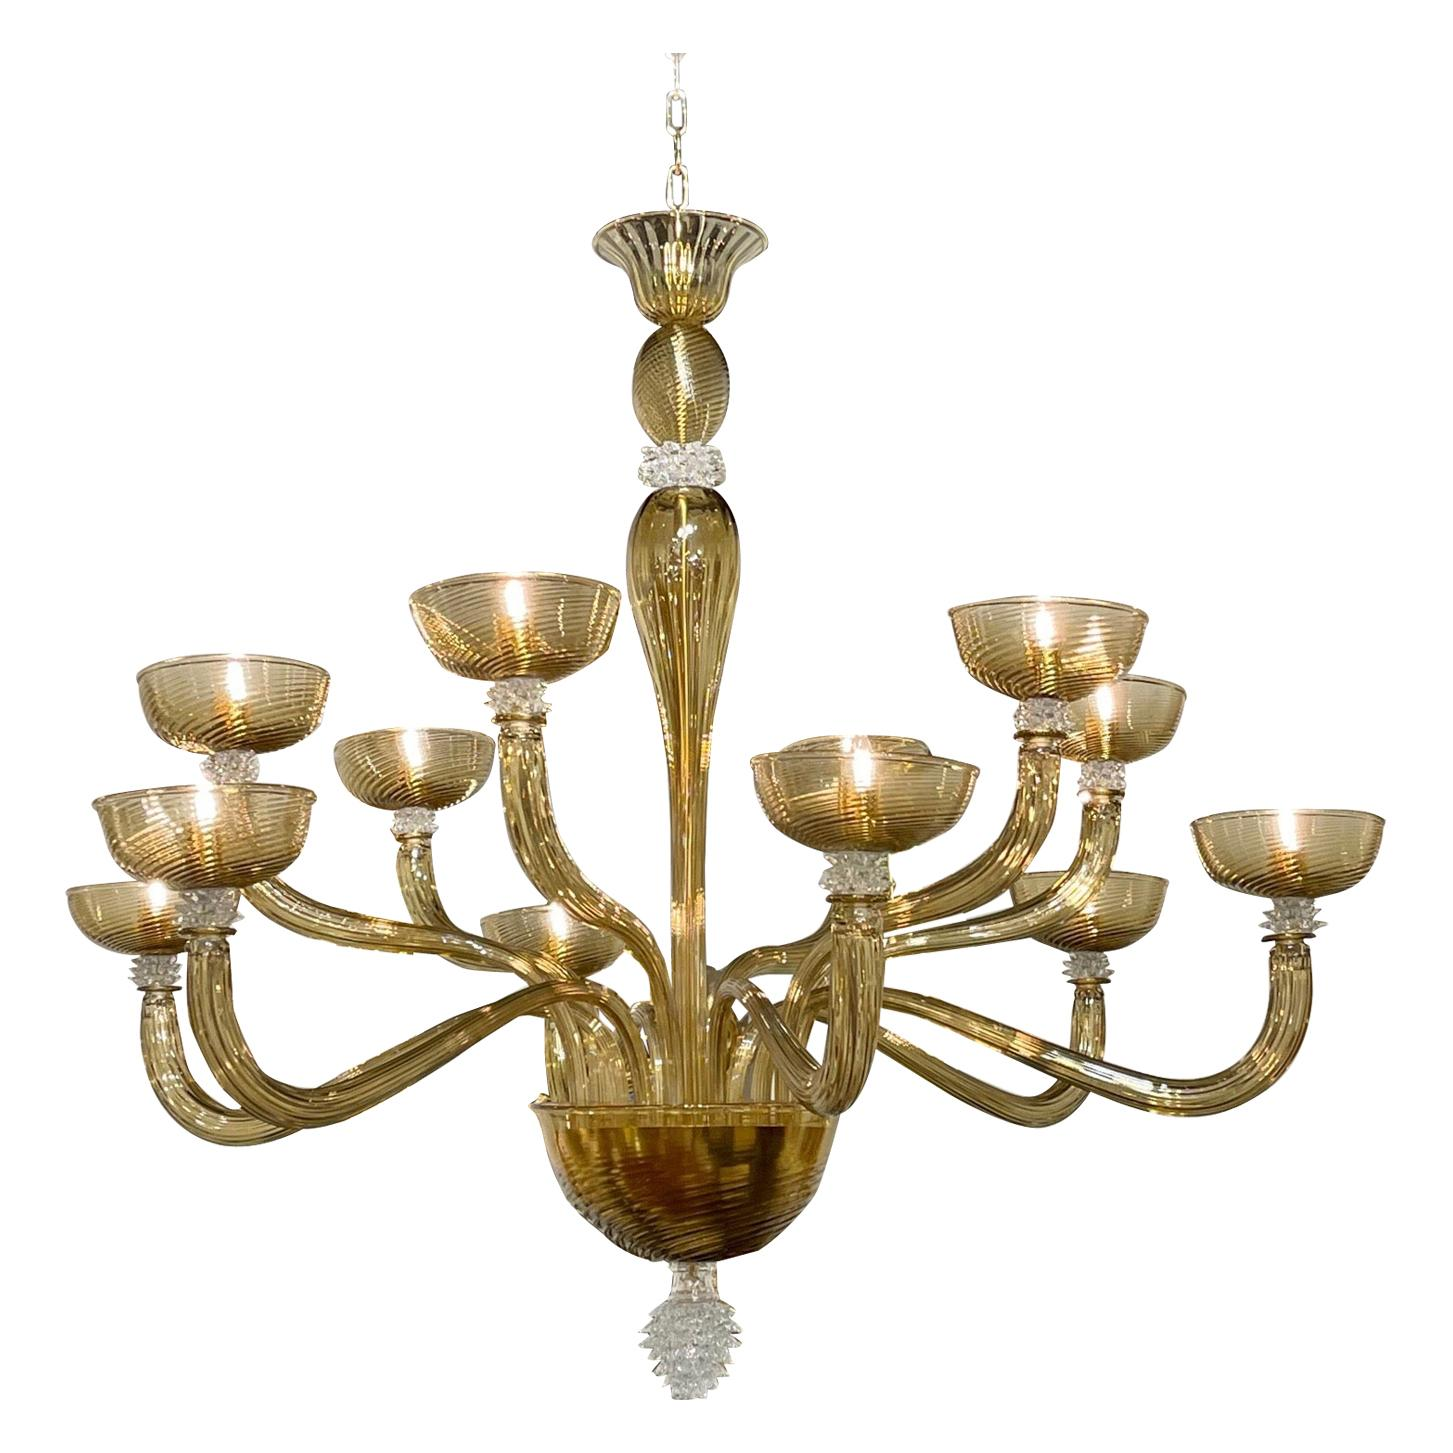 Modern Gold Murano Glass Chandelier with 12 Arms